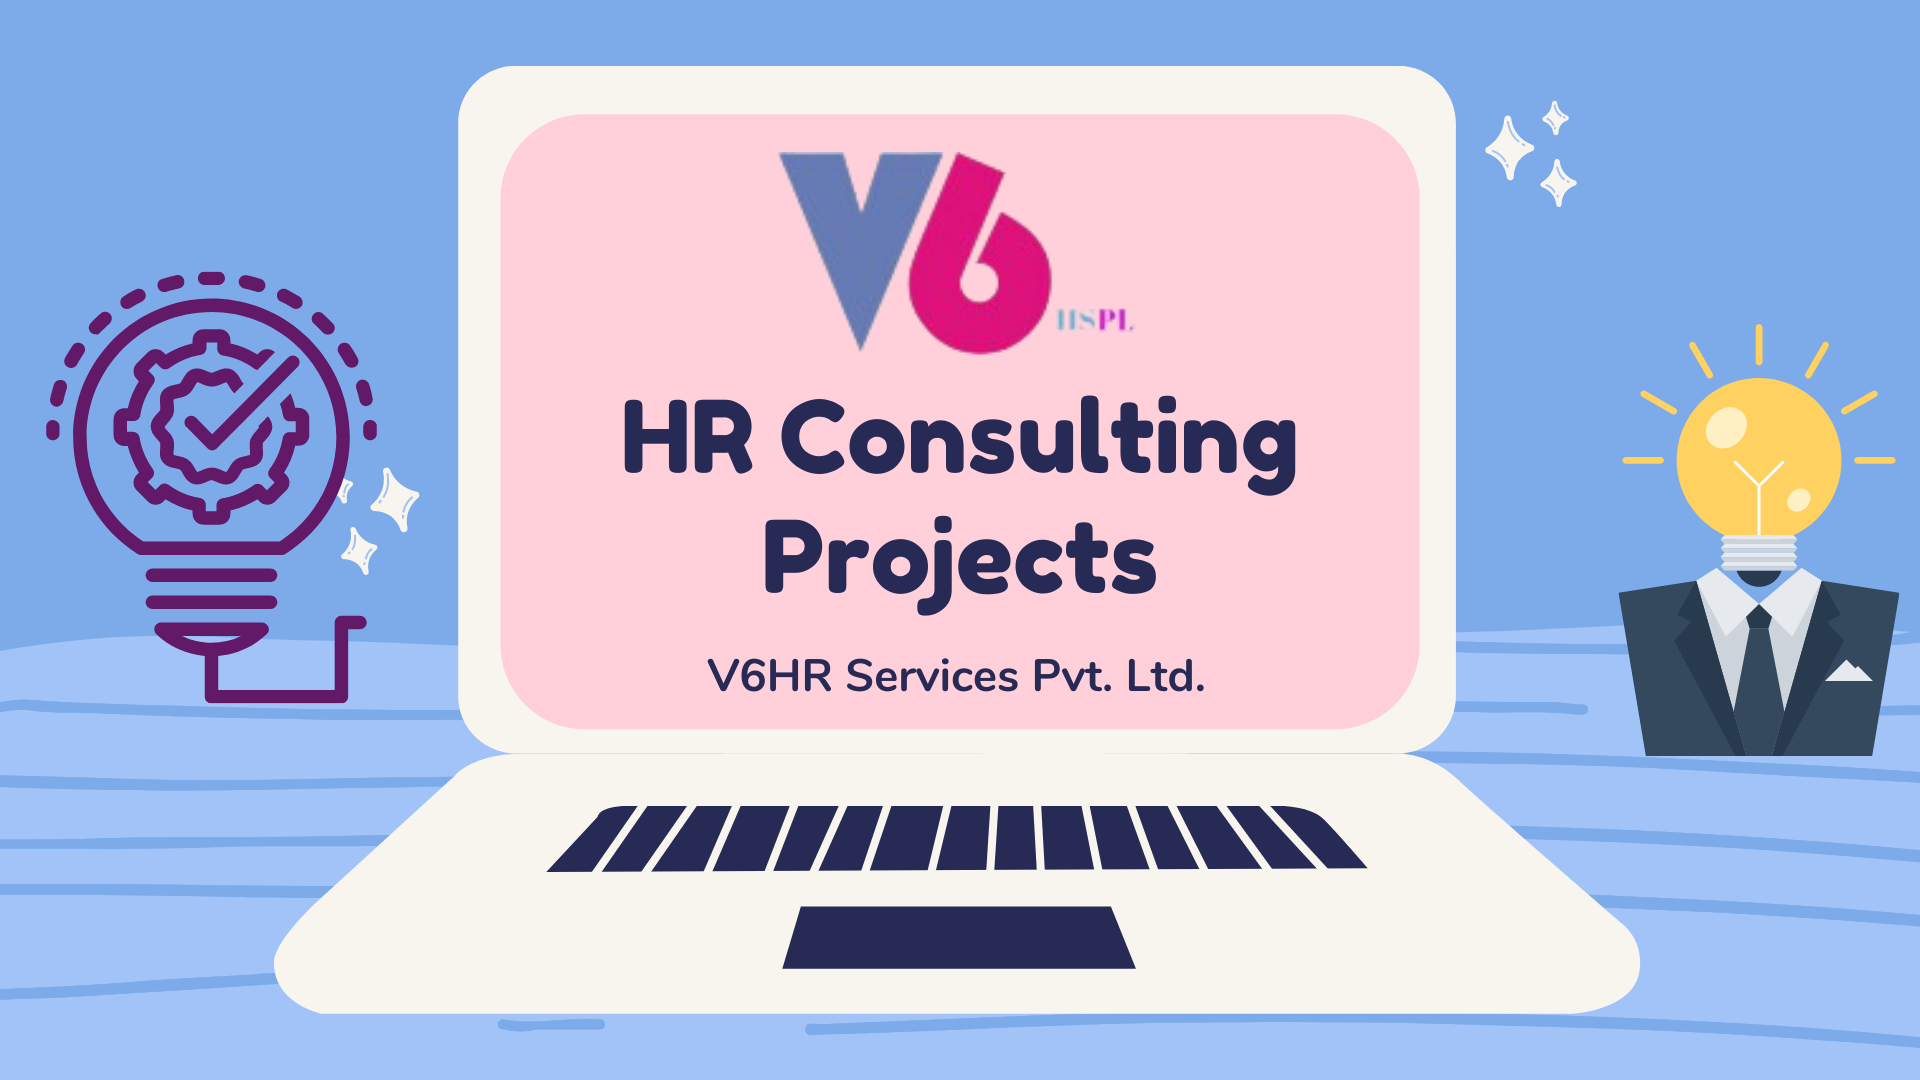 HR Consulting Projects - The Real Secret to Finding the Best Professional HR Consultants